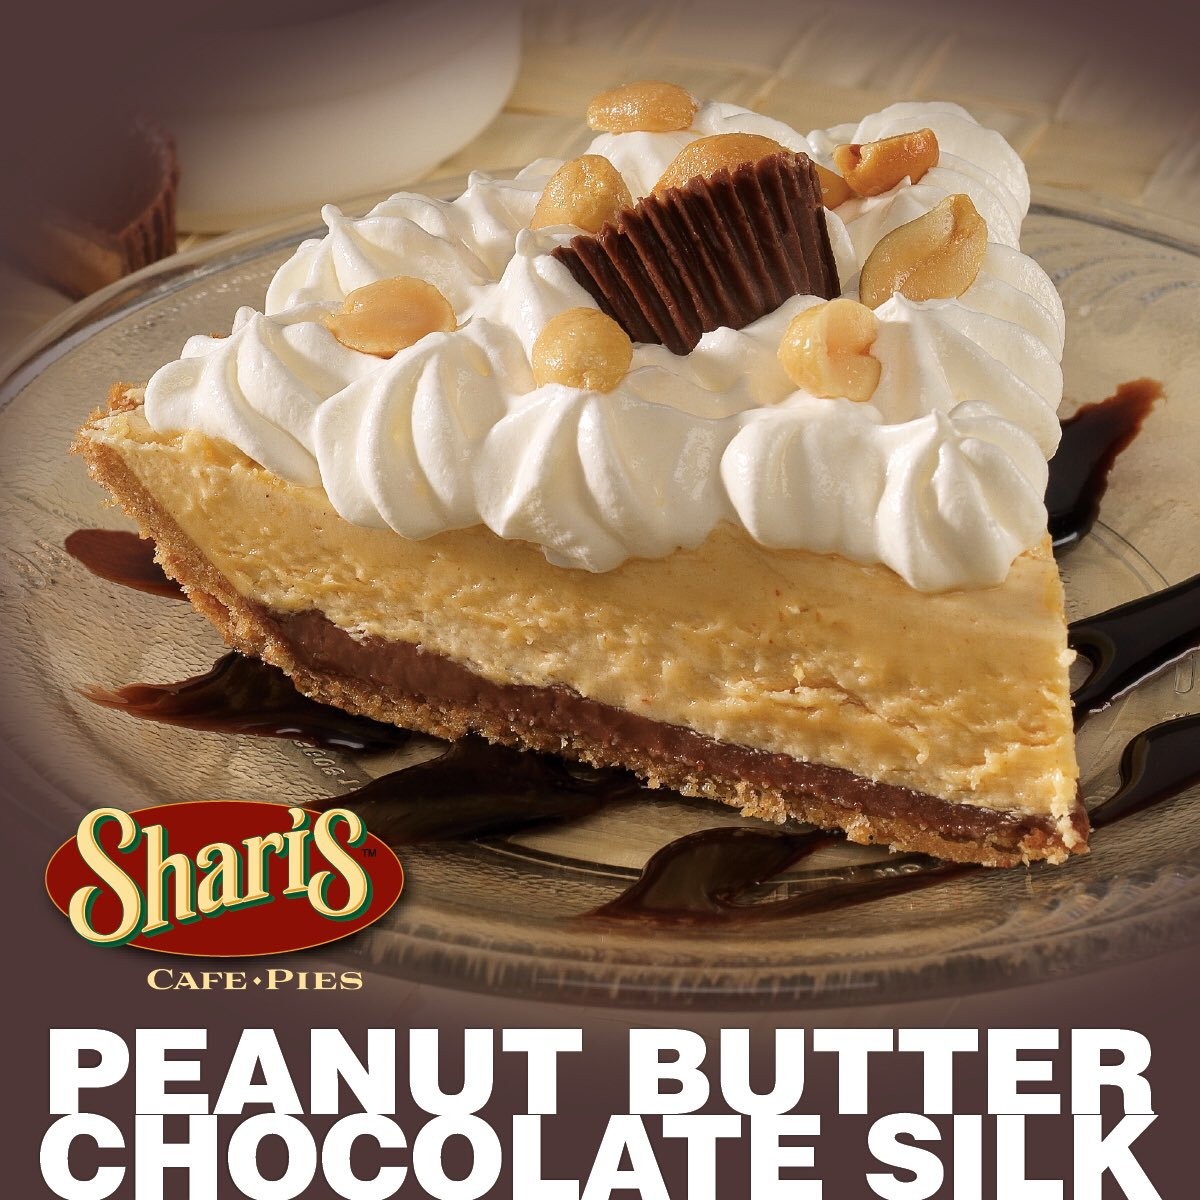 Shari S Shari 39s Cafe And Pies Sharispies Twitter